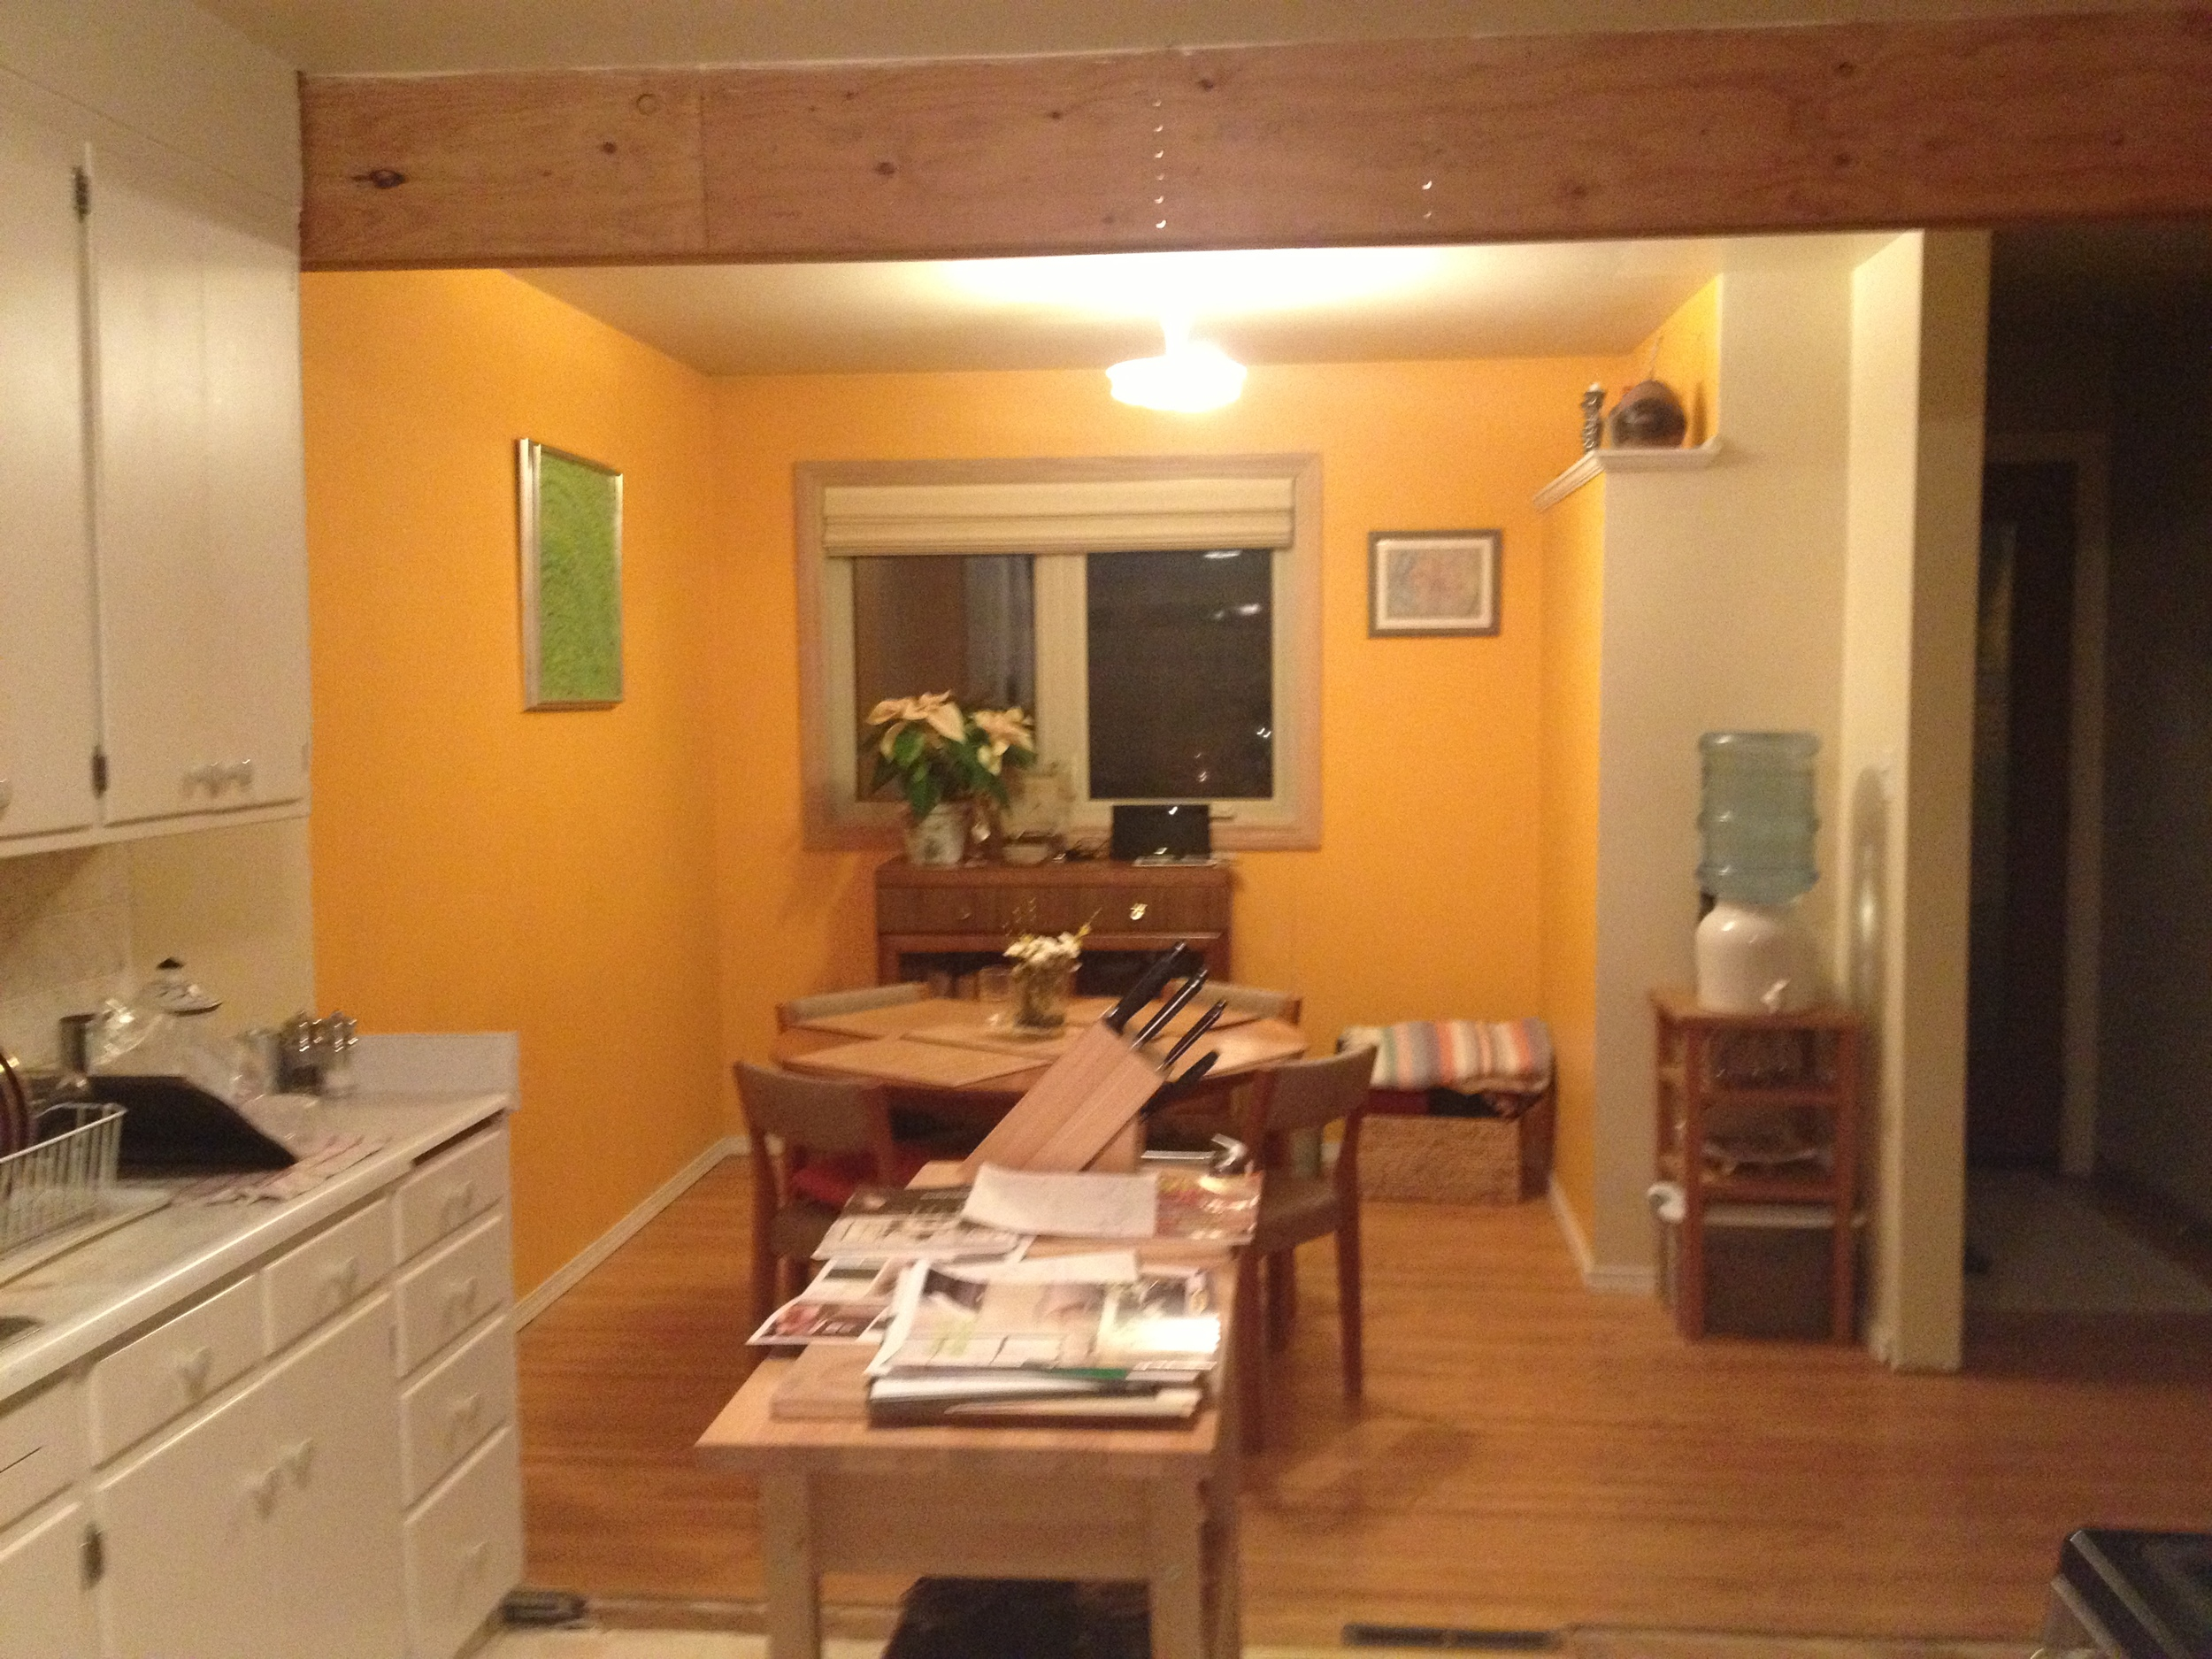 Westmount Kitchen and Dining Room Before